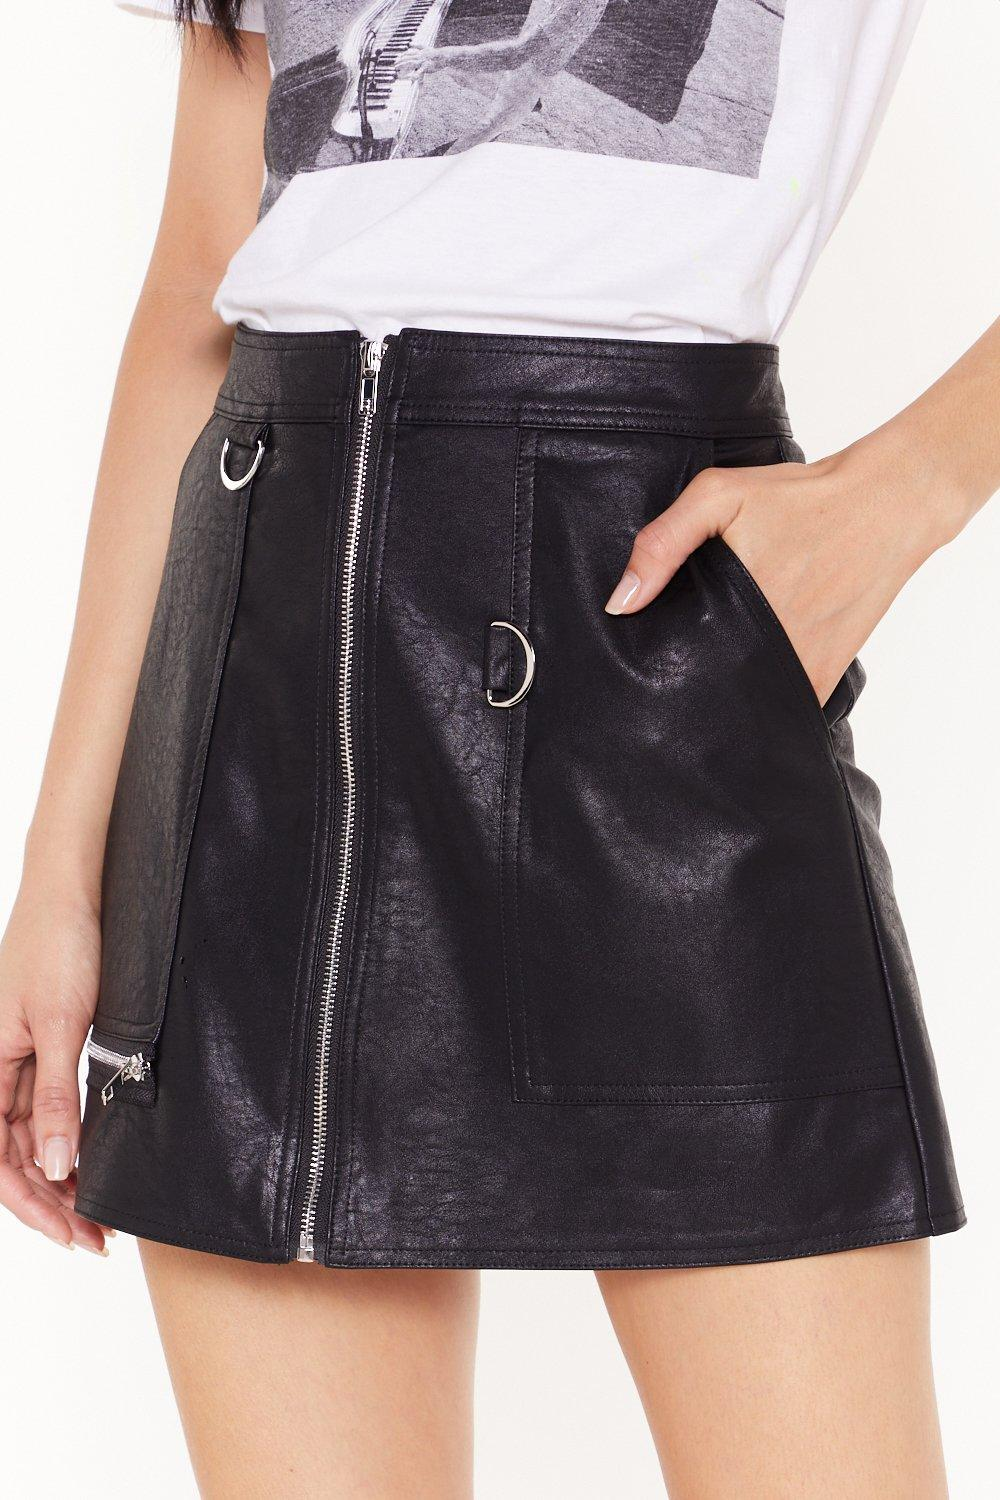 cd73f323f7 Zip Up Your Troubles Faux Leather Skirt | Shop Clothes at Nasty Gal!